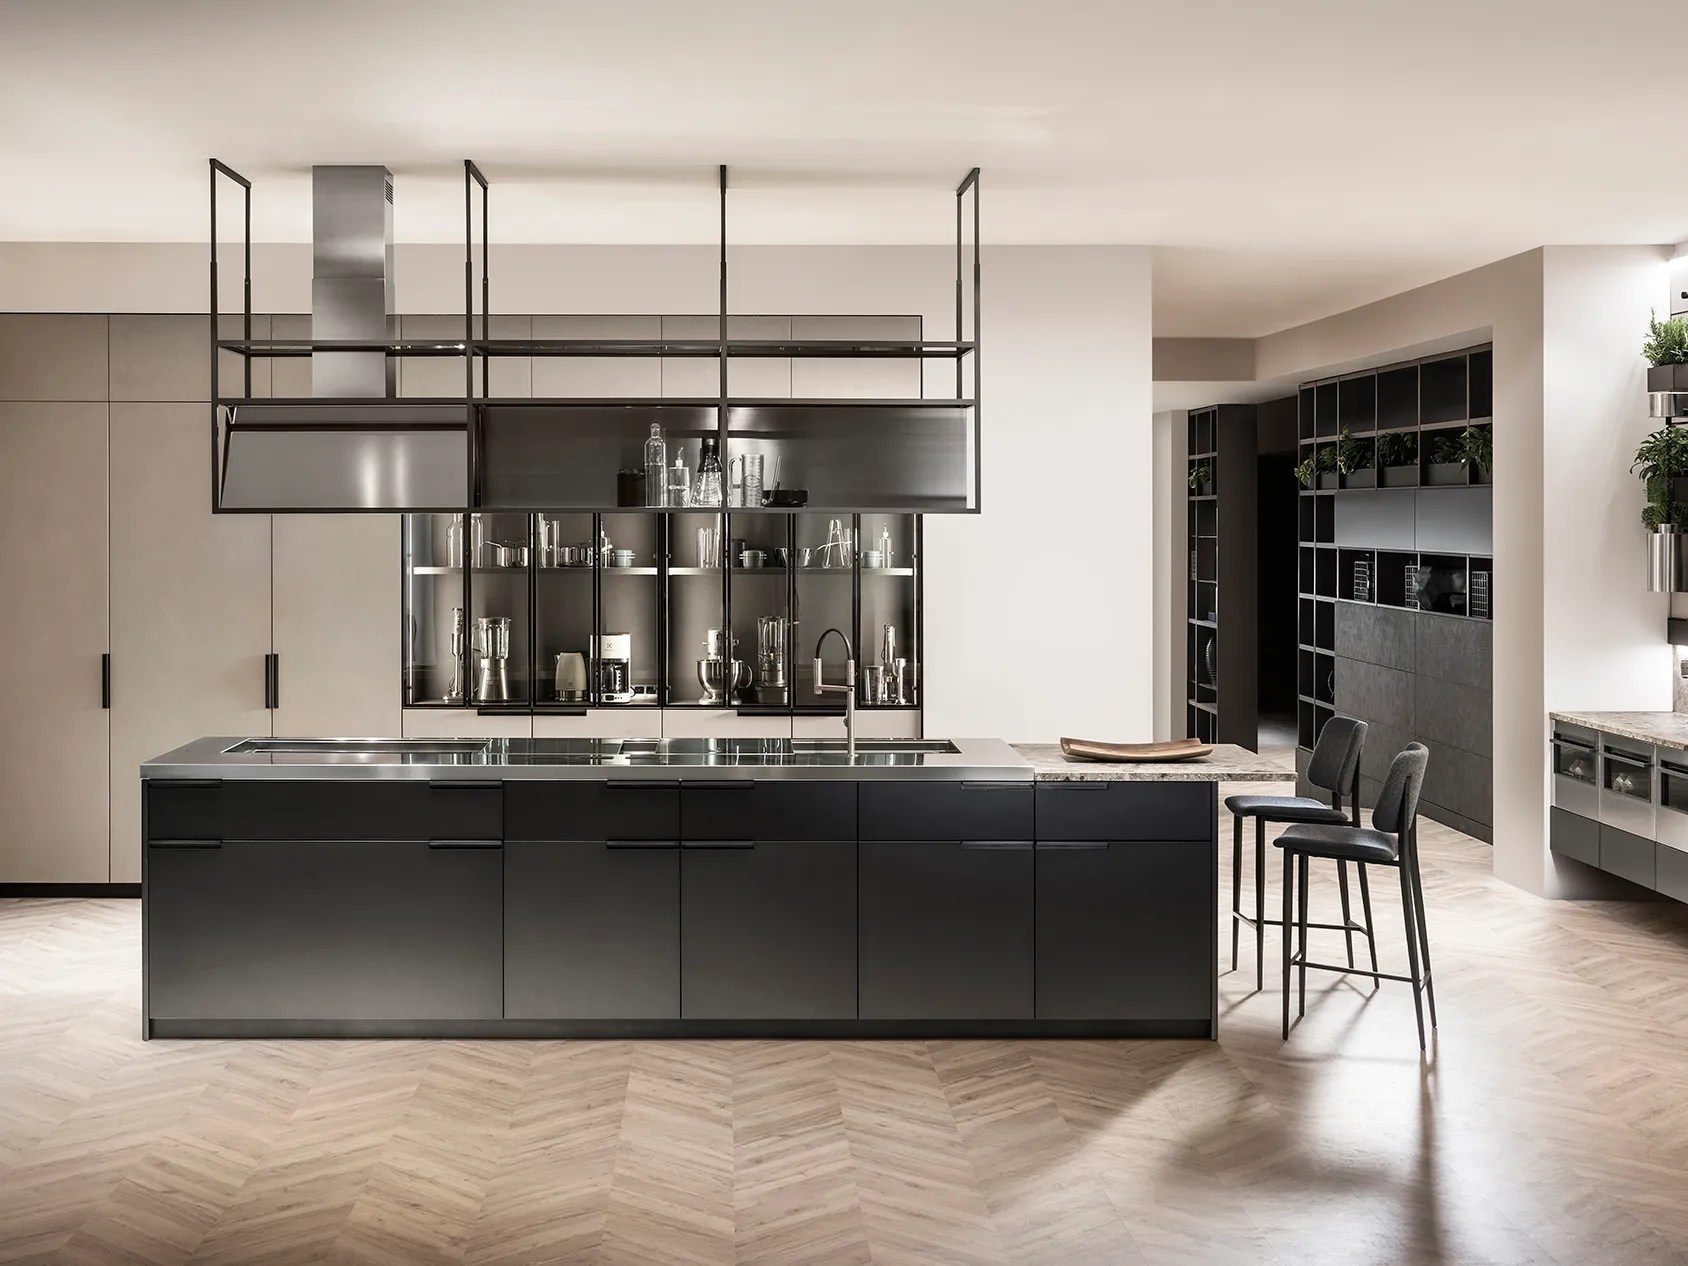 Poggenpohl Amsterdam The Biggest Trends In Kitchen Design From Eurocucina